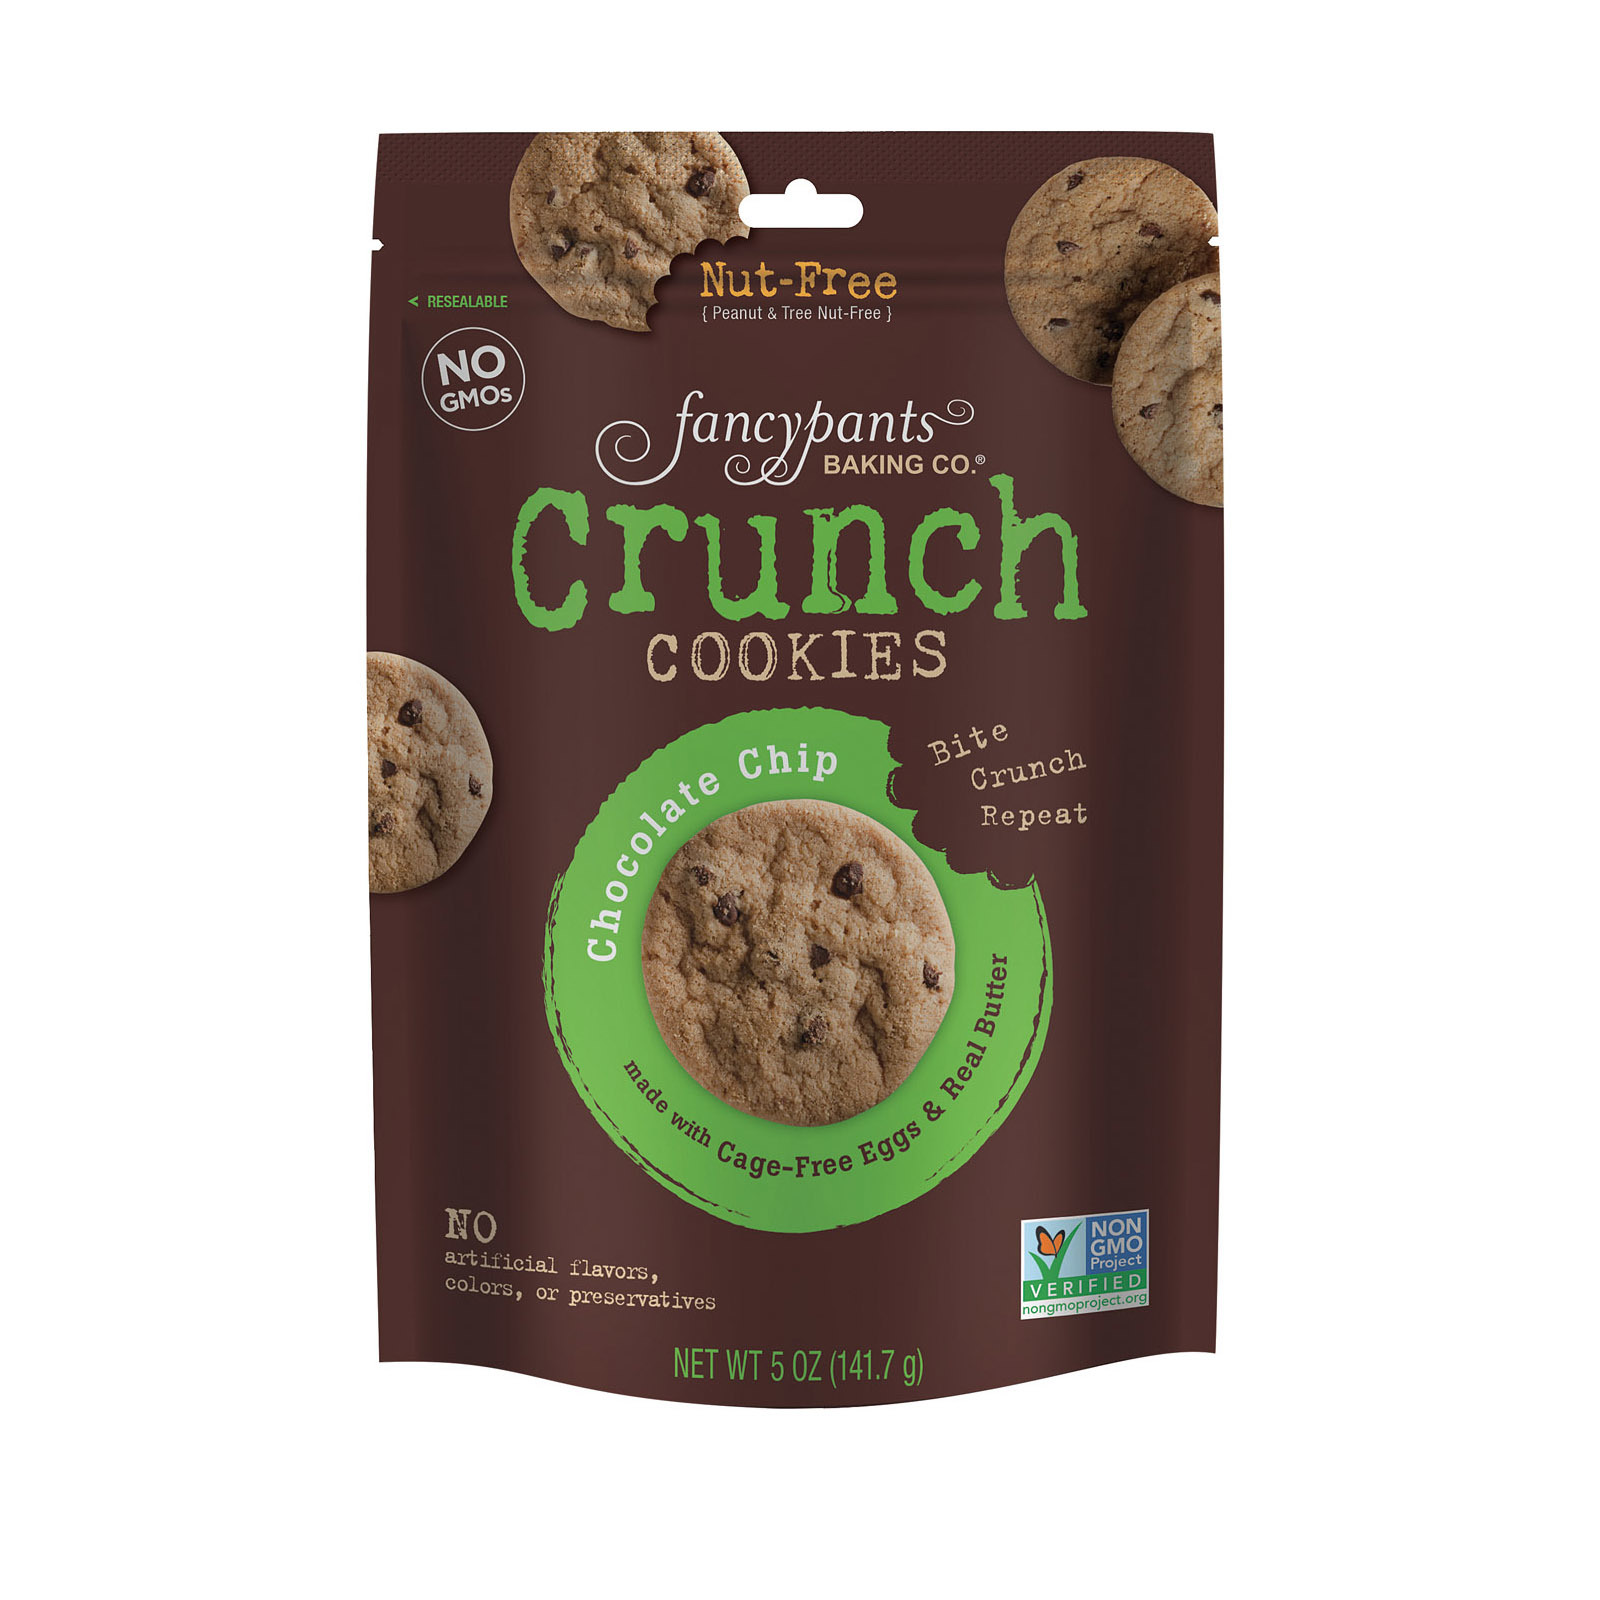 Fancypants Cookies - Chocolate Chip - Case of 6 - 5 oz.